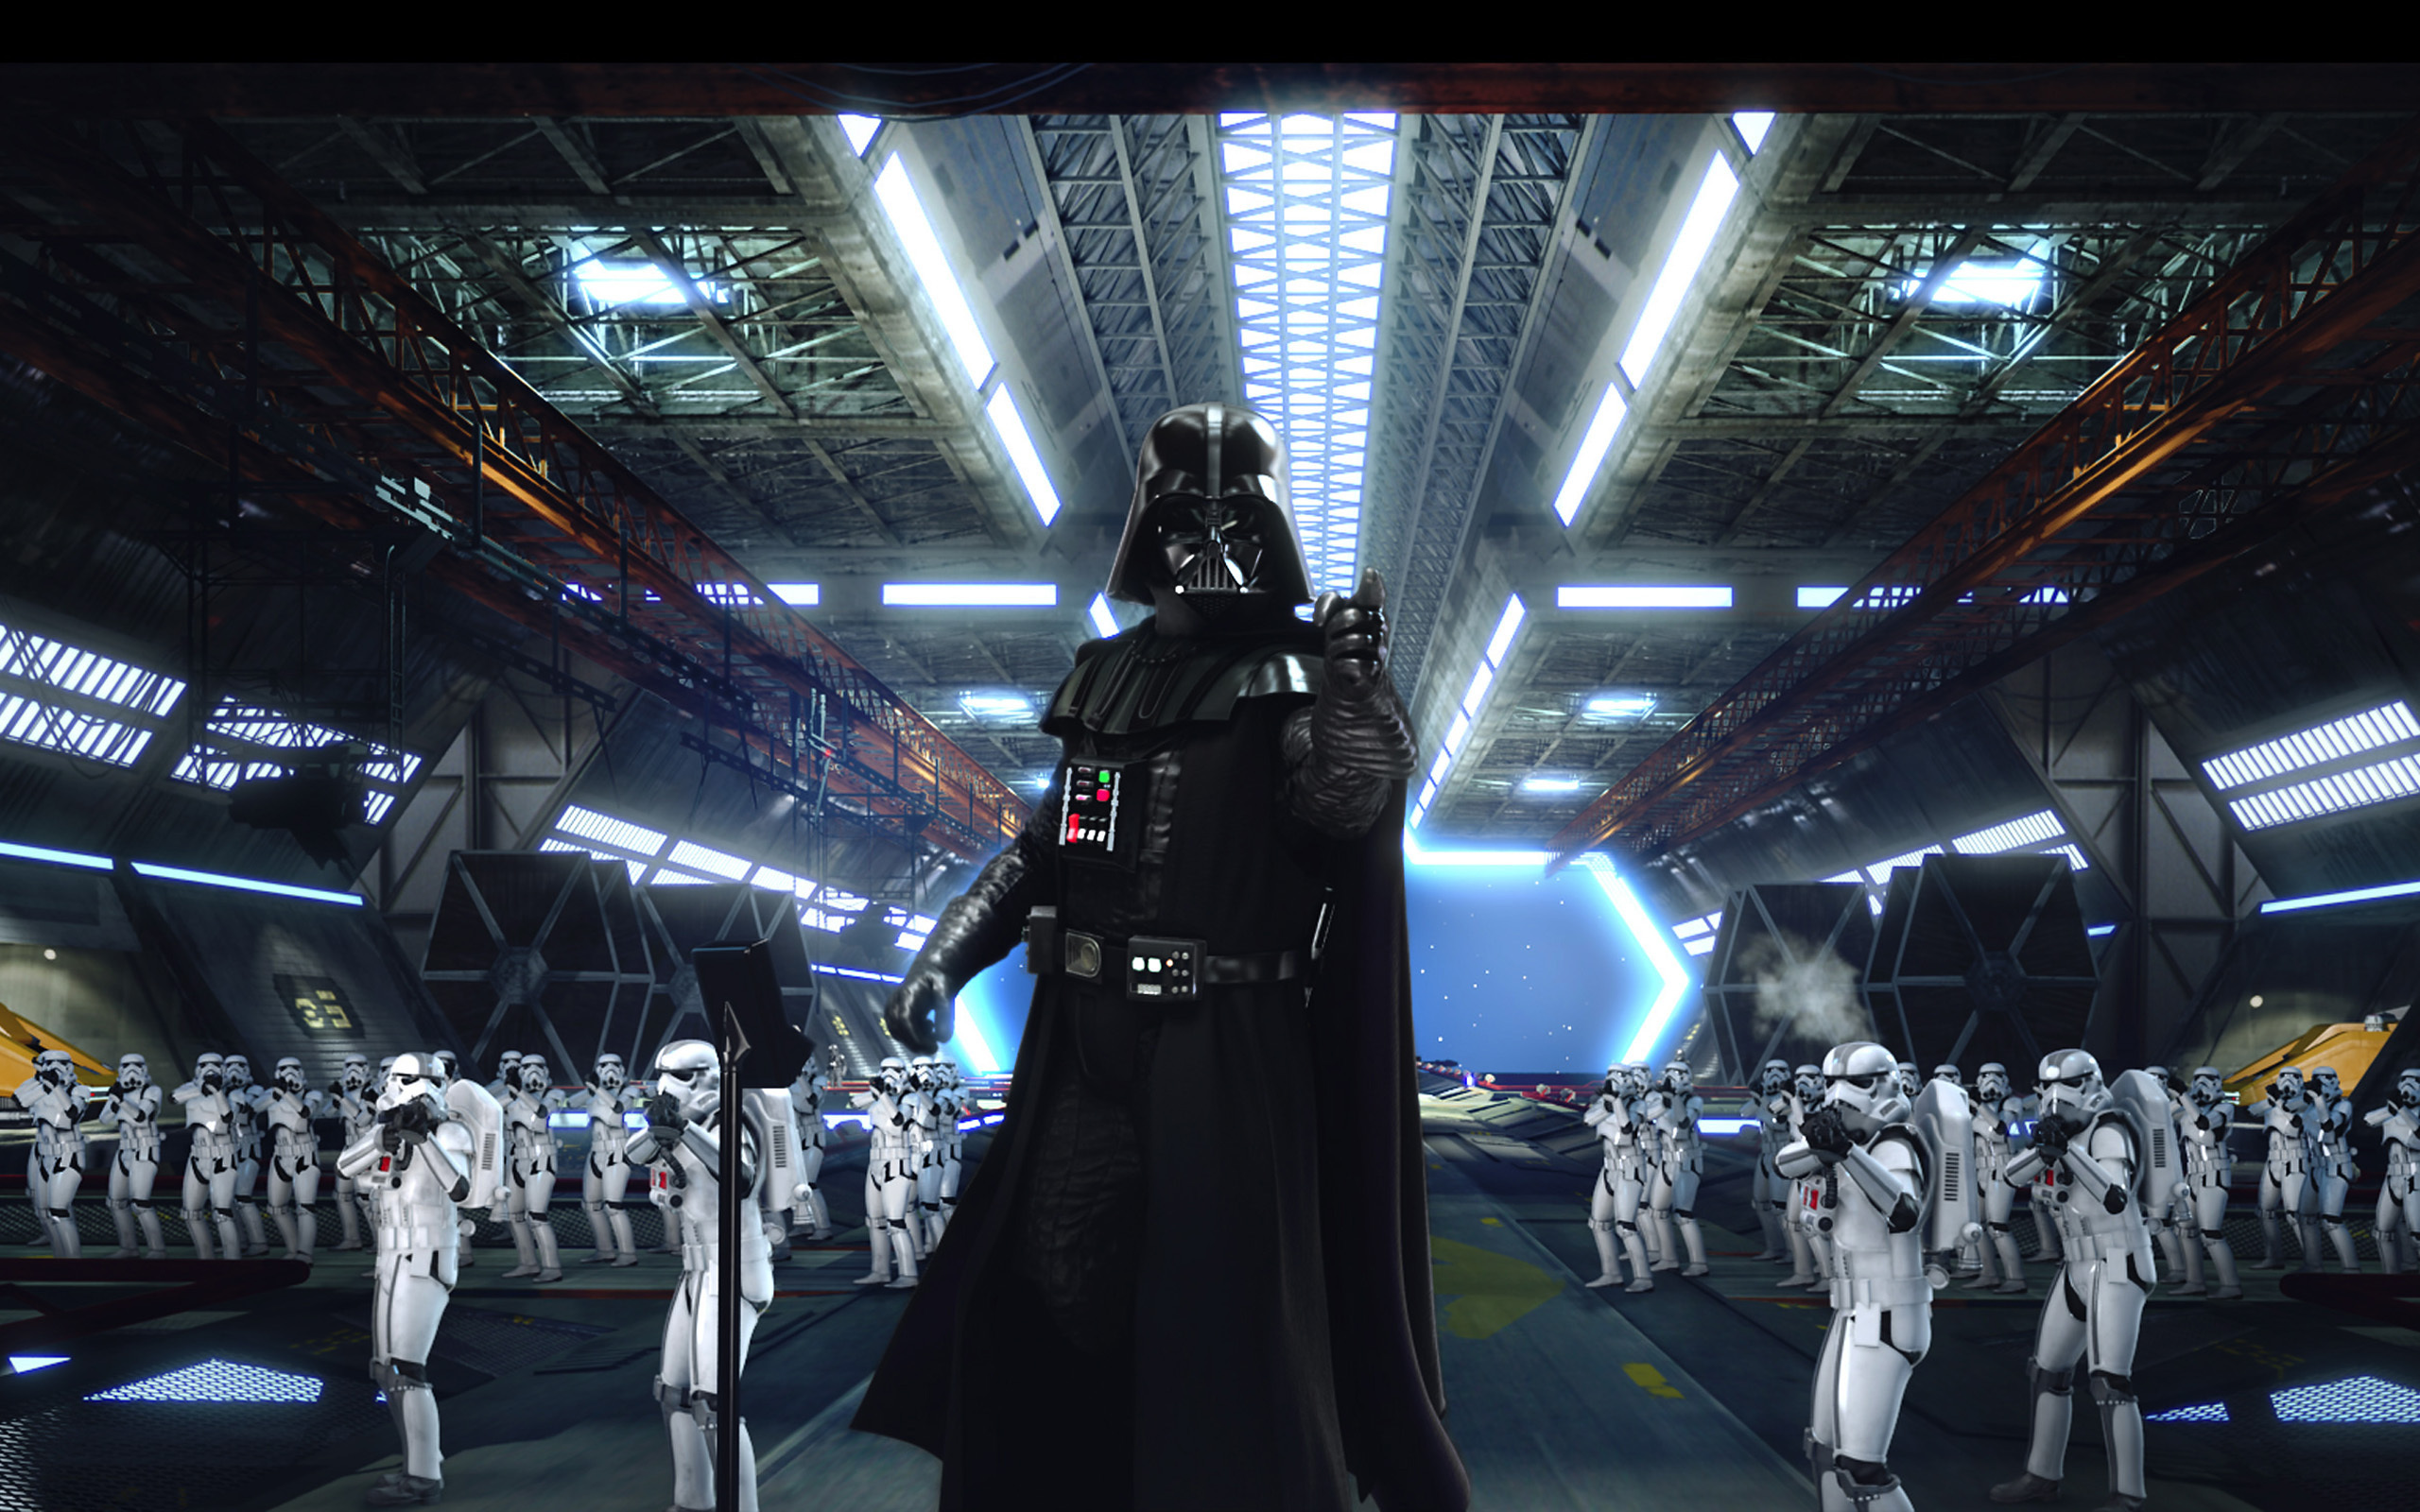 Star Wars Wallpaper, HQ, Darth Vader